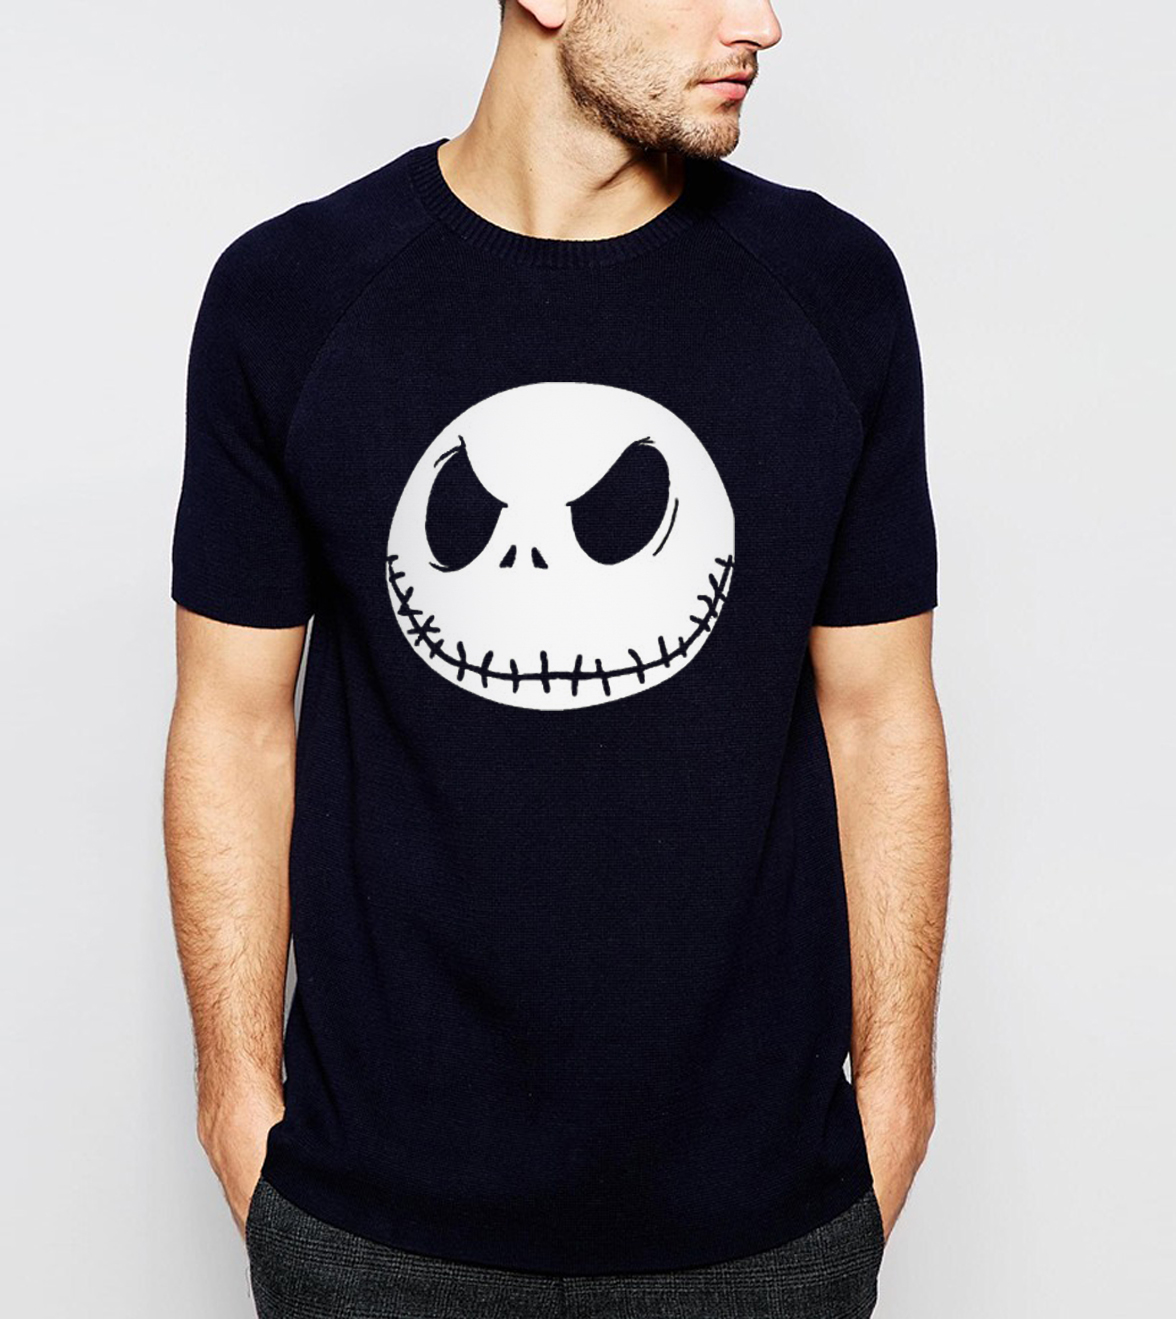 ALI shop ...  ... 32791189173 ... 2 ... nightmare before christmas cartoon Jack Skellington Men T Shirt Grimace 2019 Summer New 100% Cotton Hip Hop Streetwear T-Shirt ...